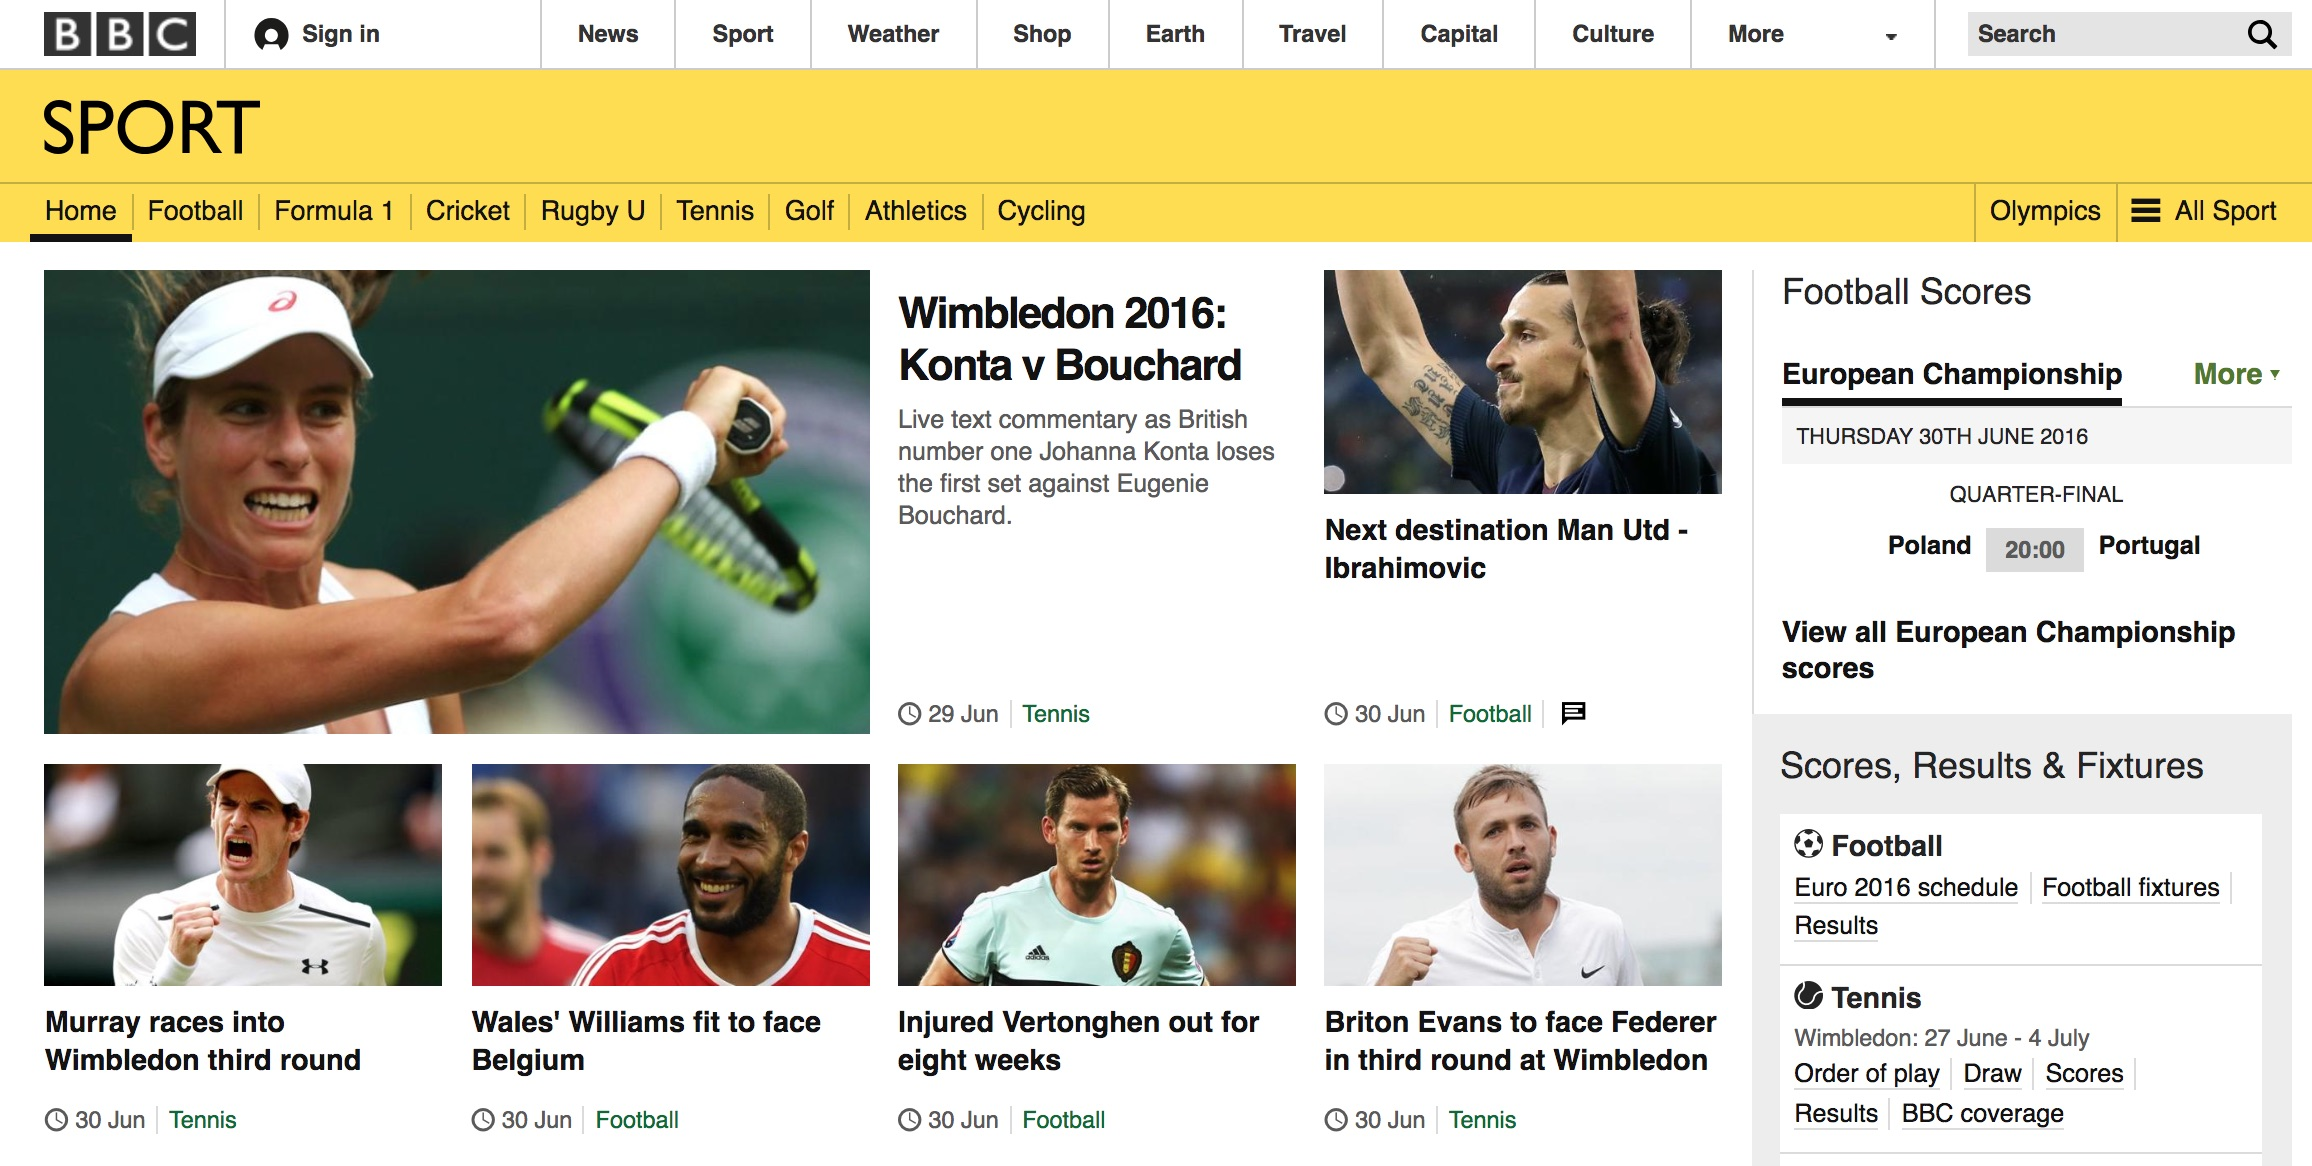 BBC.co.uk homepage (2016)